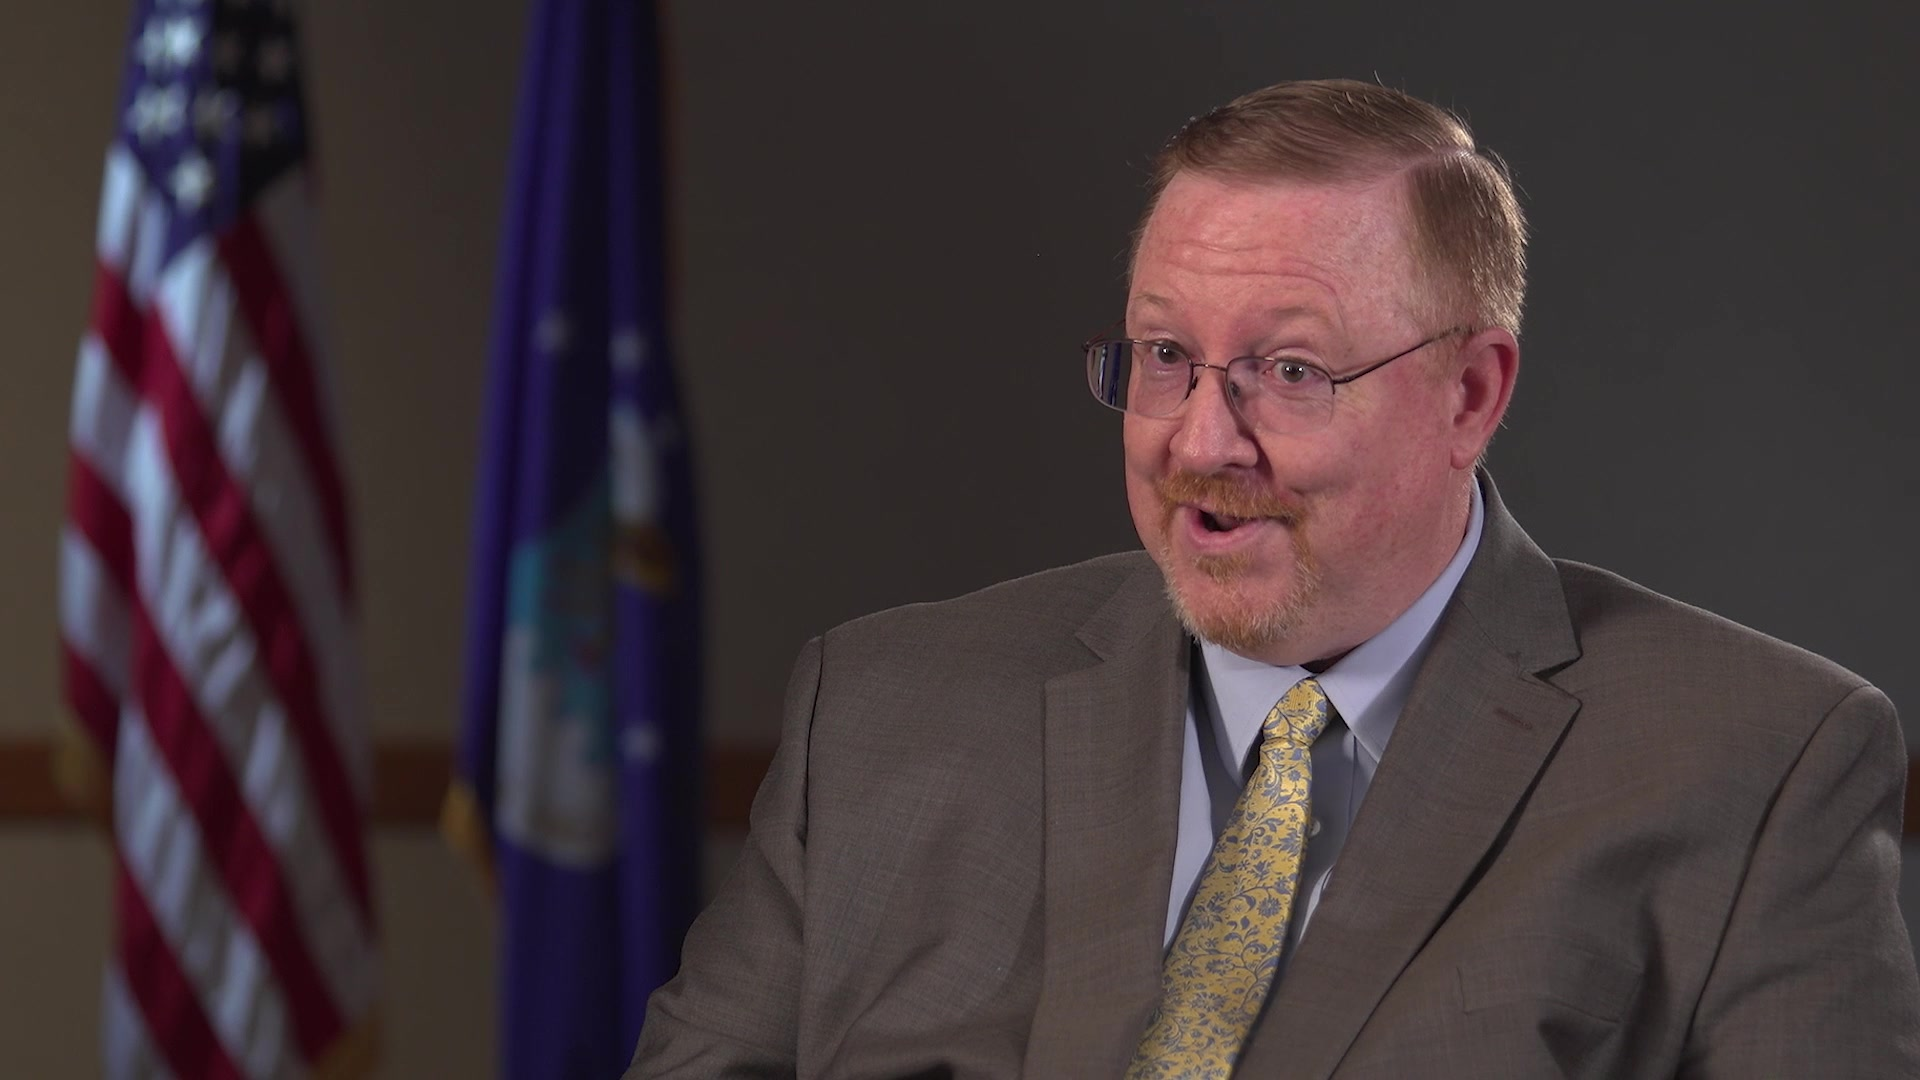 Terry Edwards, Director, Air Force Civil Engineer Center, Joint Base San Antonio-Lackland, Texas, shares his perspectives on the importance of mentorship, Wright-Patterson Air Force Base, Ohio, Nov. 14, 2018. Air Force Materiel Command shares the impact of mentoring through first-person experiences from its leaders. (U.S. Air Force Video by Airman 1st Class Emily Woodring)